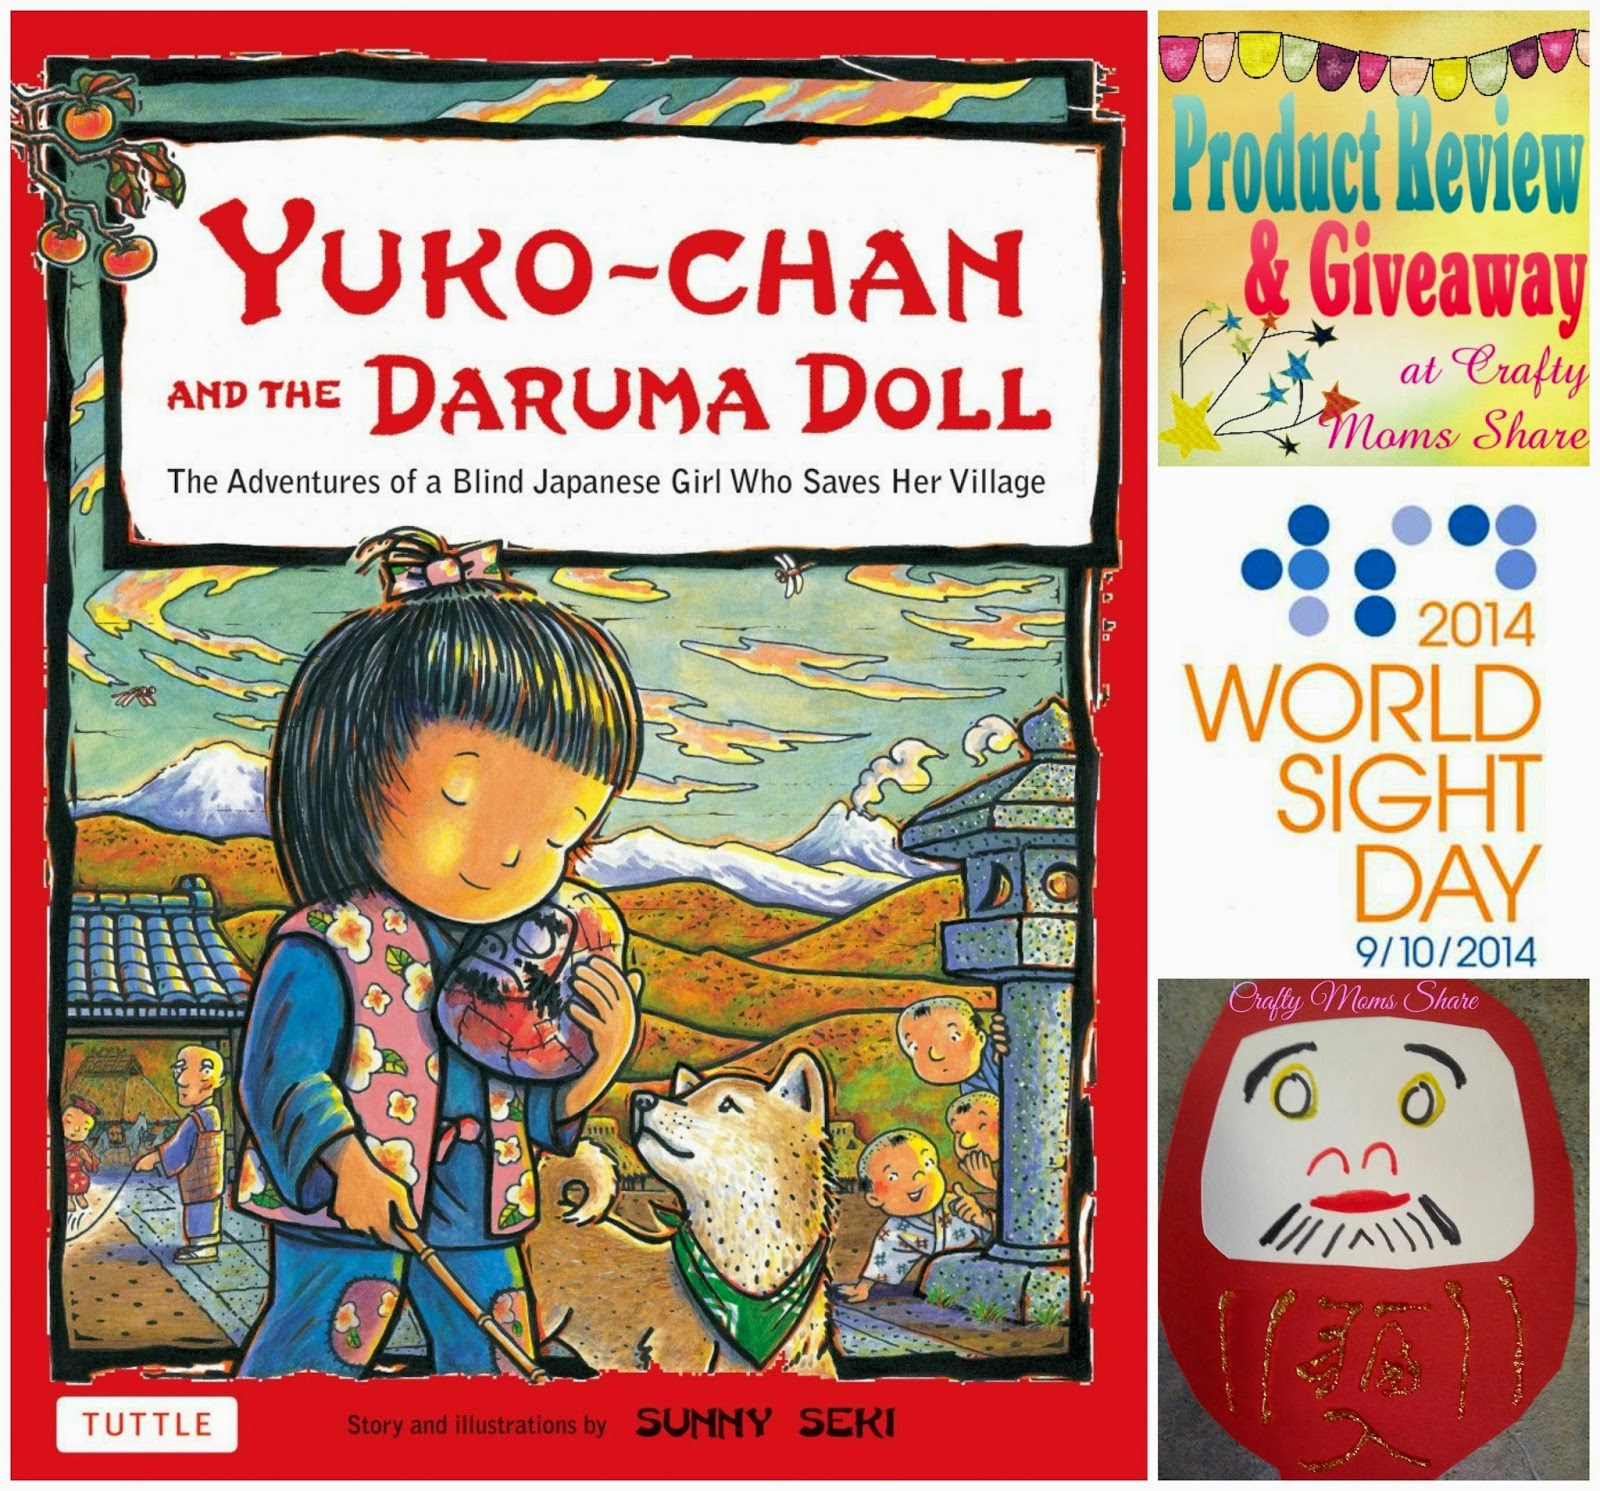 http://craftymomsshare.blogspot.com/2014/10/world-sight-day-book-review-yuko-chan.html